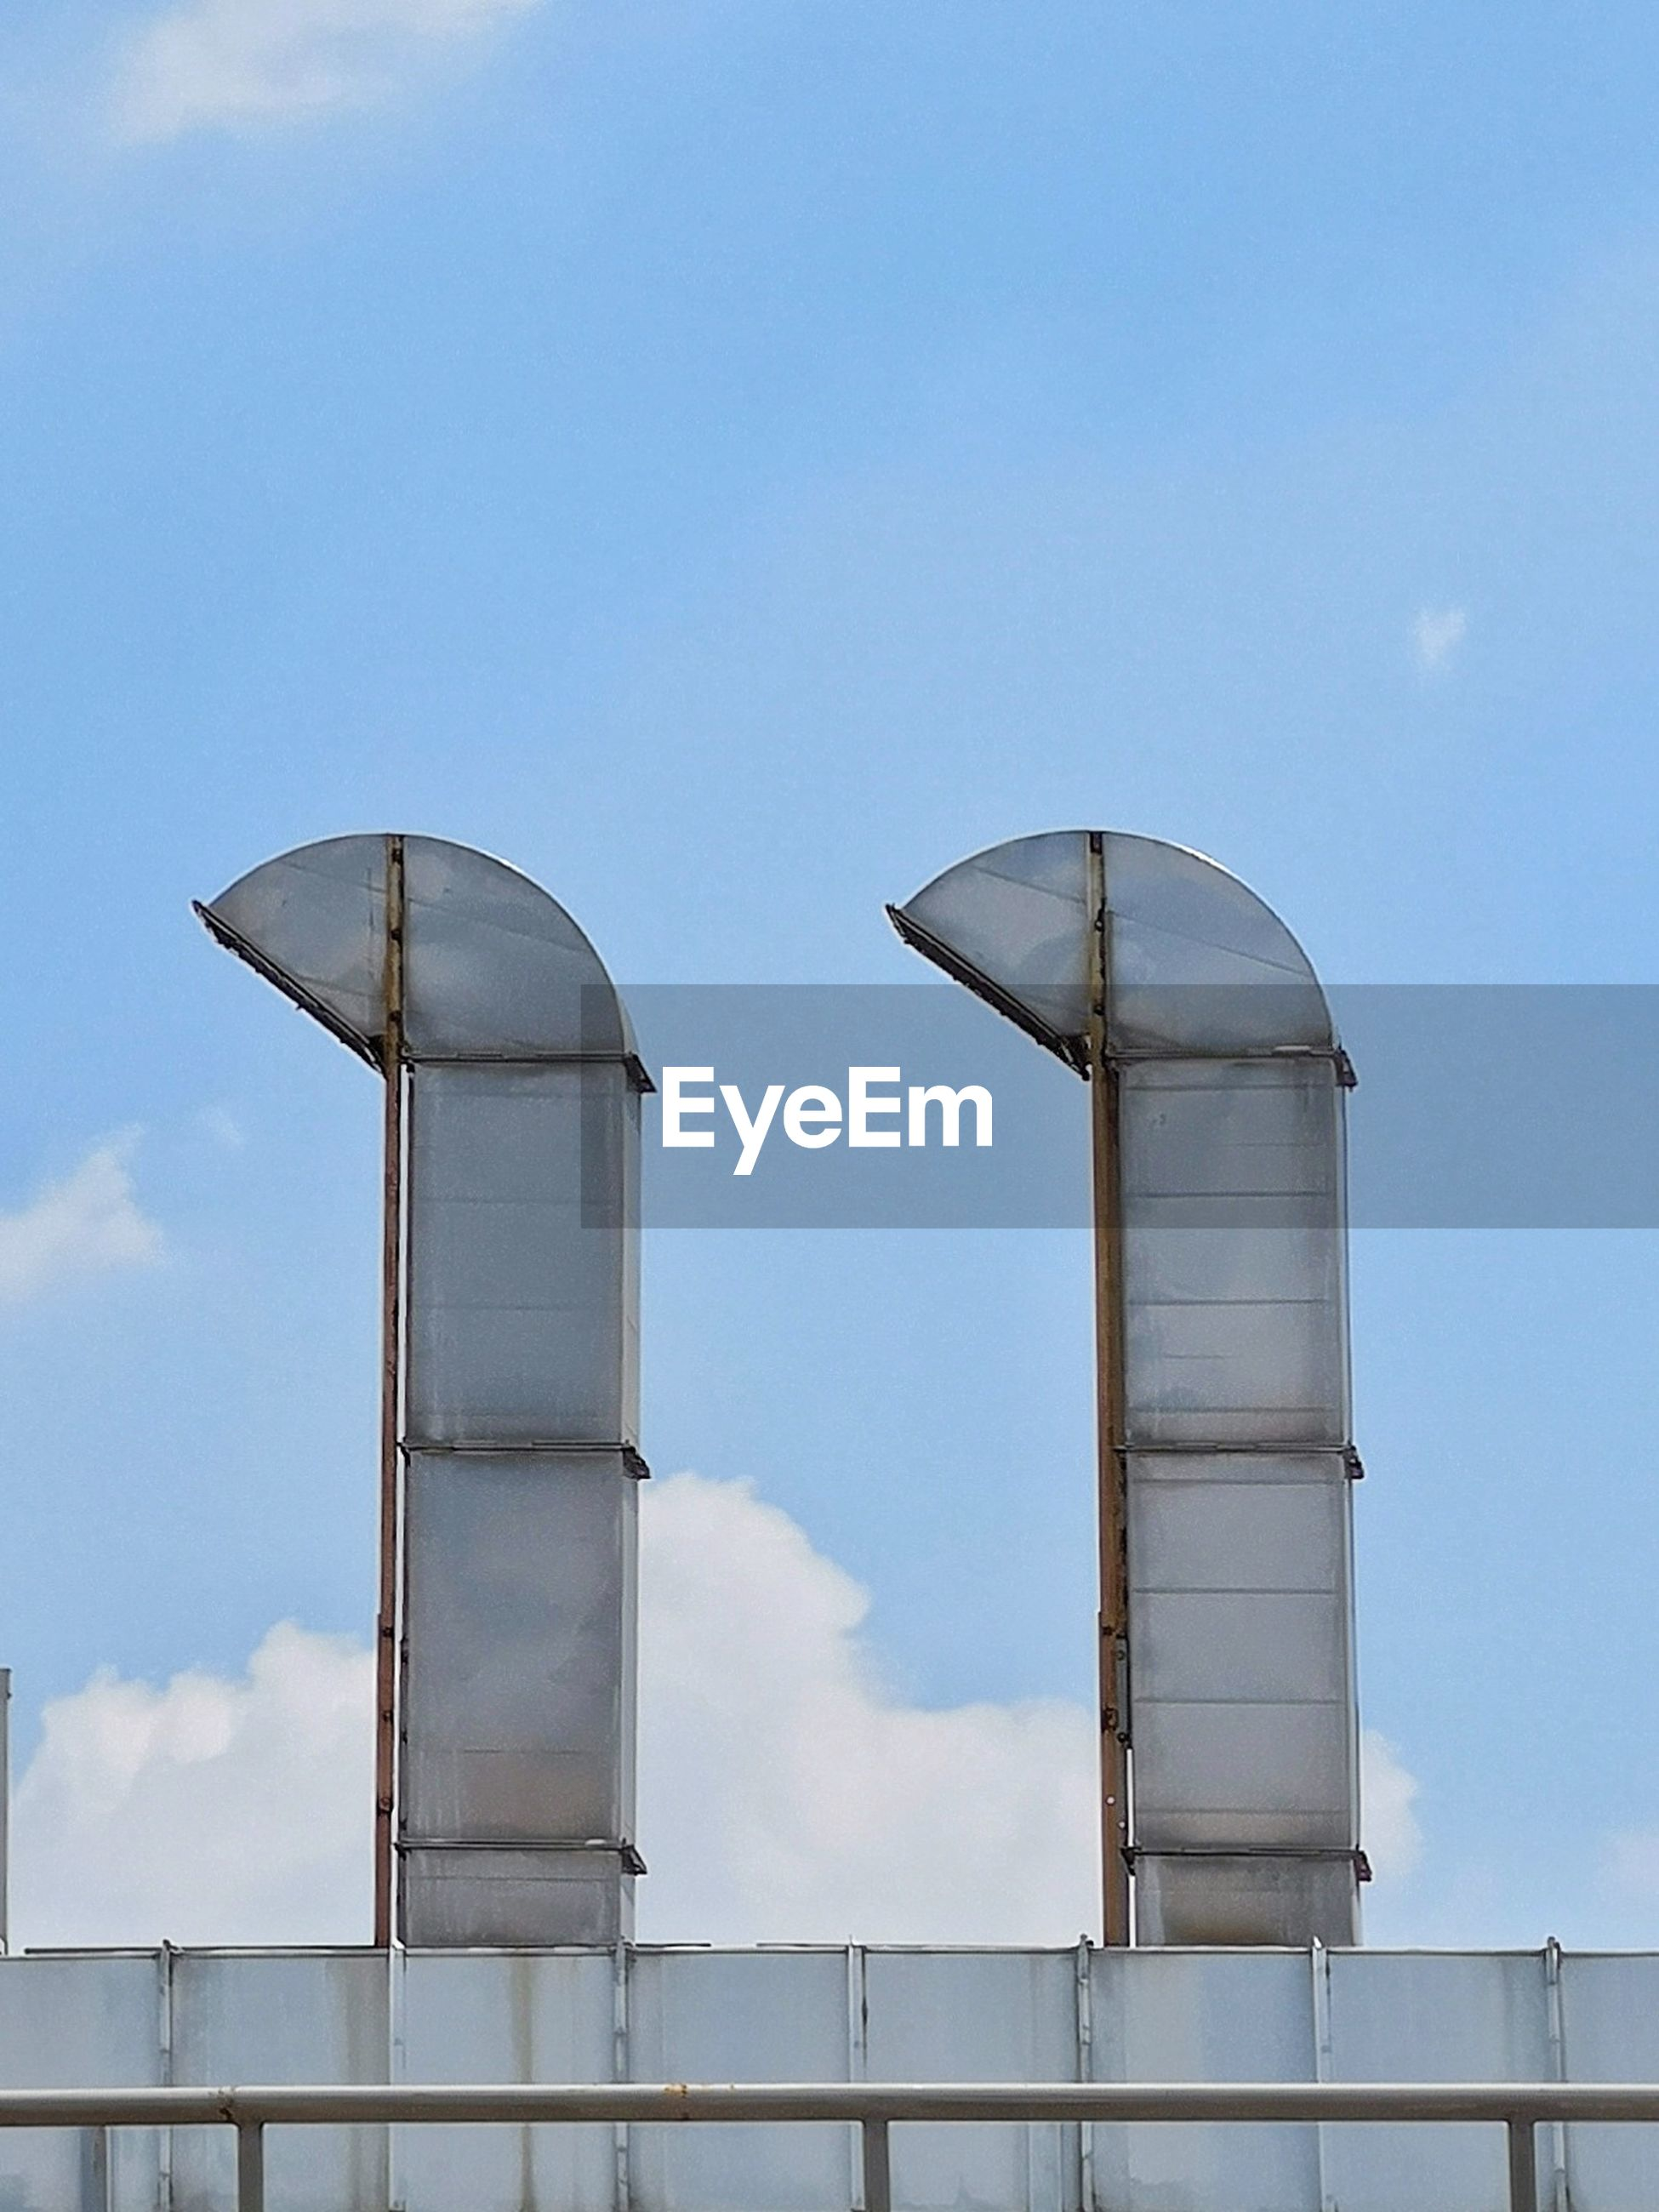 sky, architecture, built structure, low angle view, building exterior, no people, day, nature, cloud - sky, factory, industry, outdoors, blue, metal, building, travel, copy space, tall - high, white color, sunlight